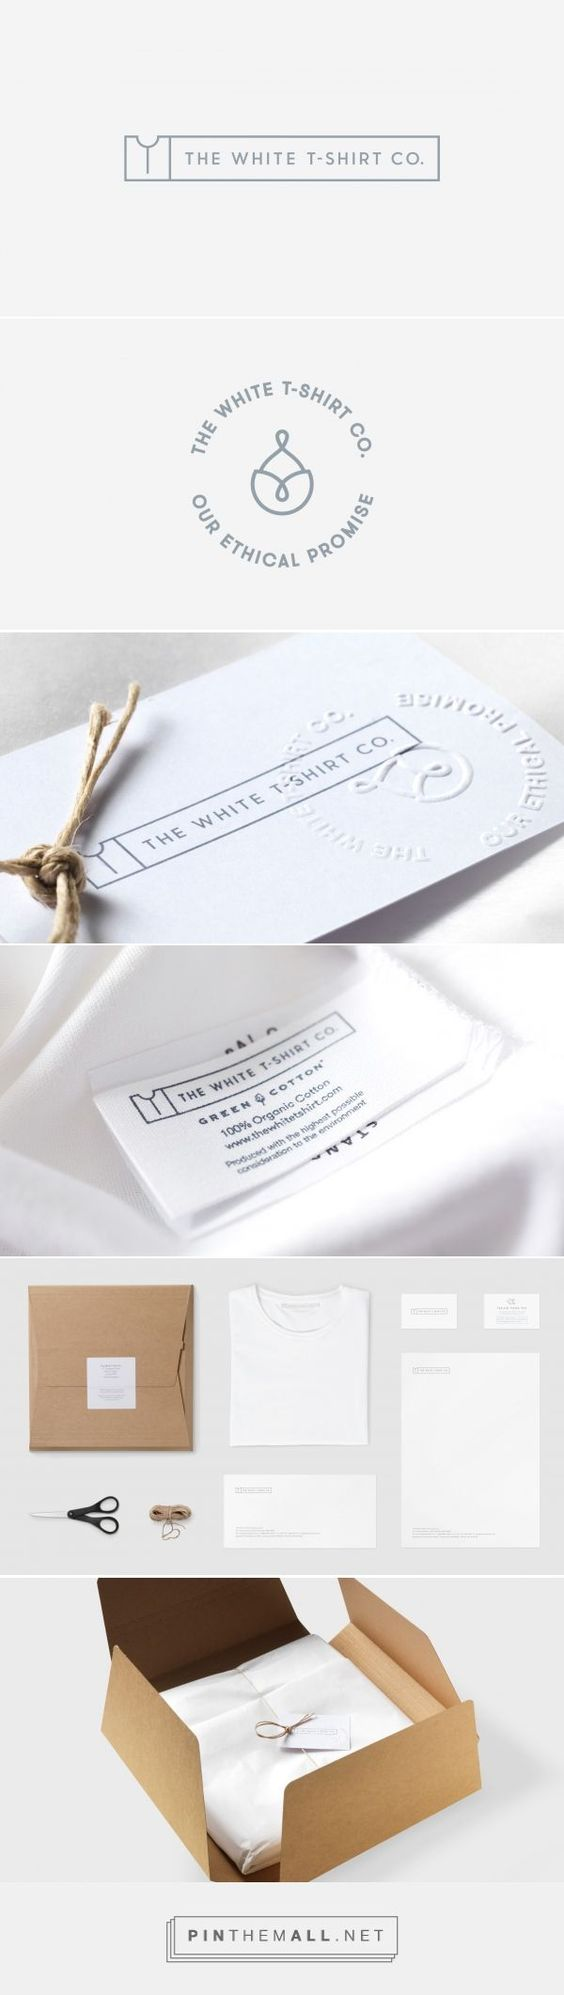 All white branding done perfectly